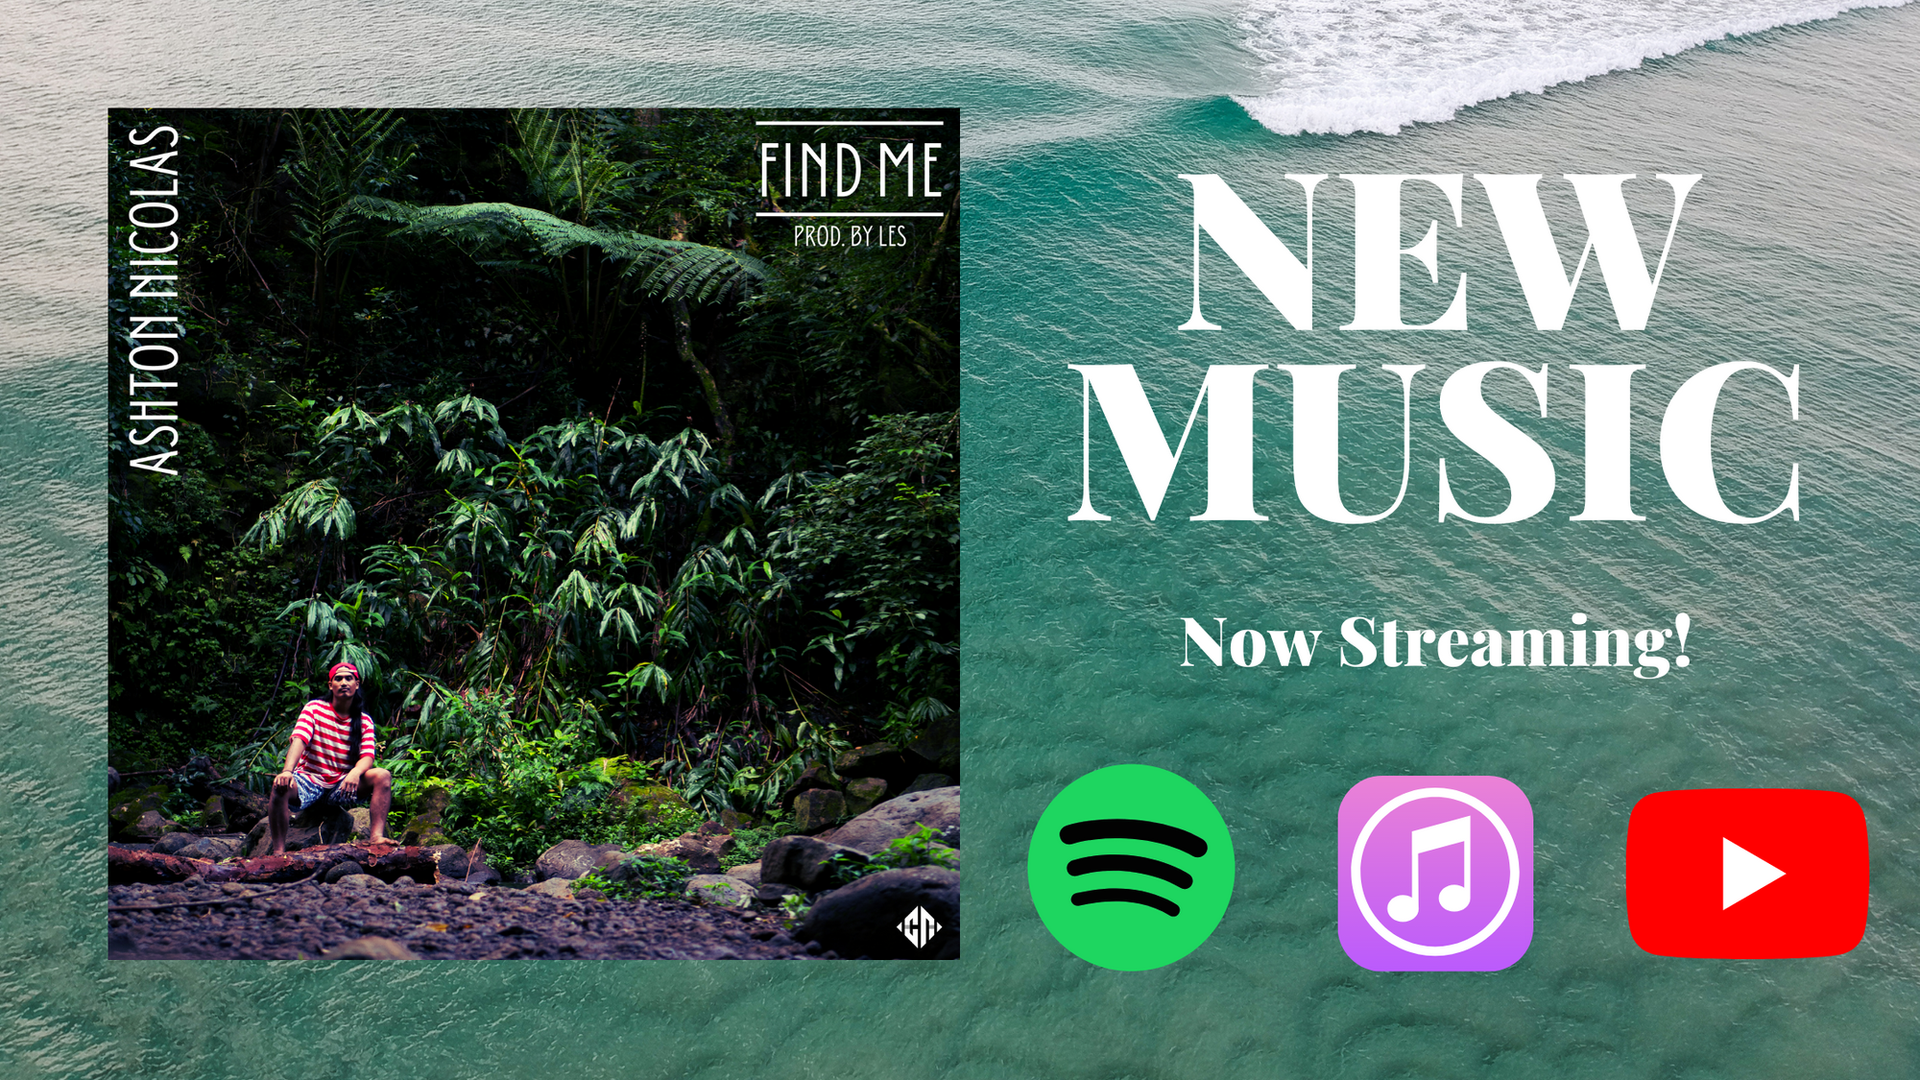 Find Me by Ashton Nicolas now streaming